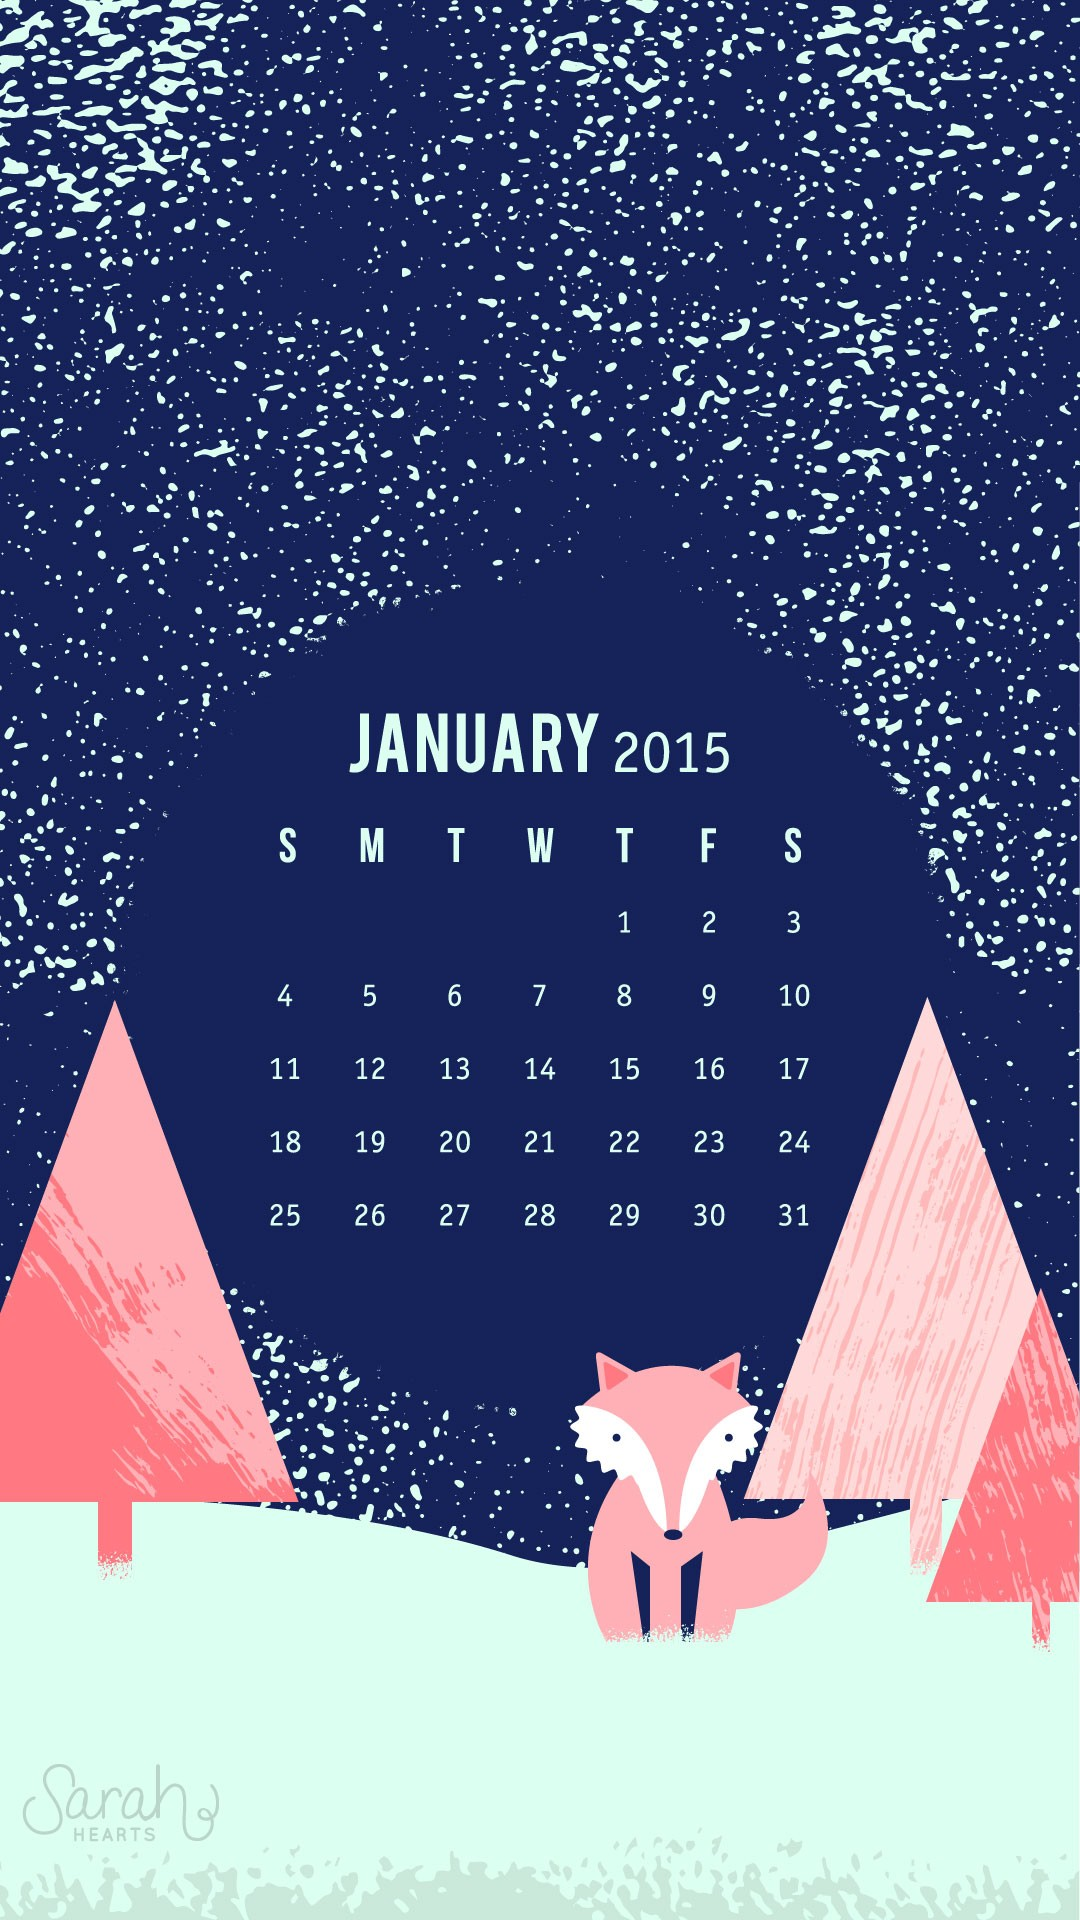 January Calendar Wallpaper Mac : January background ·① download free cool high resolution